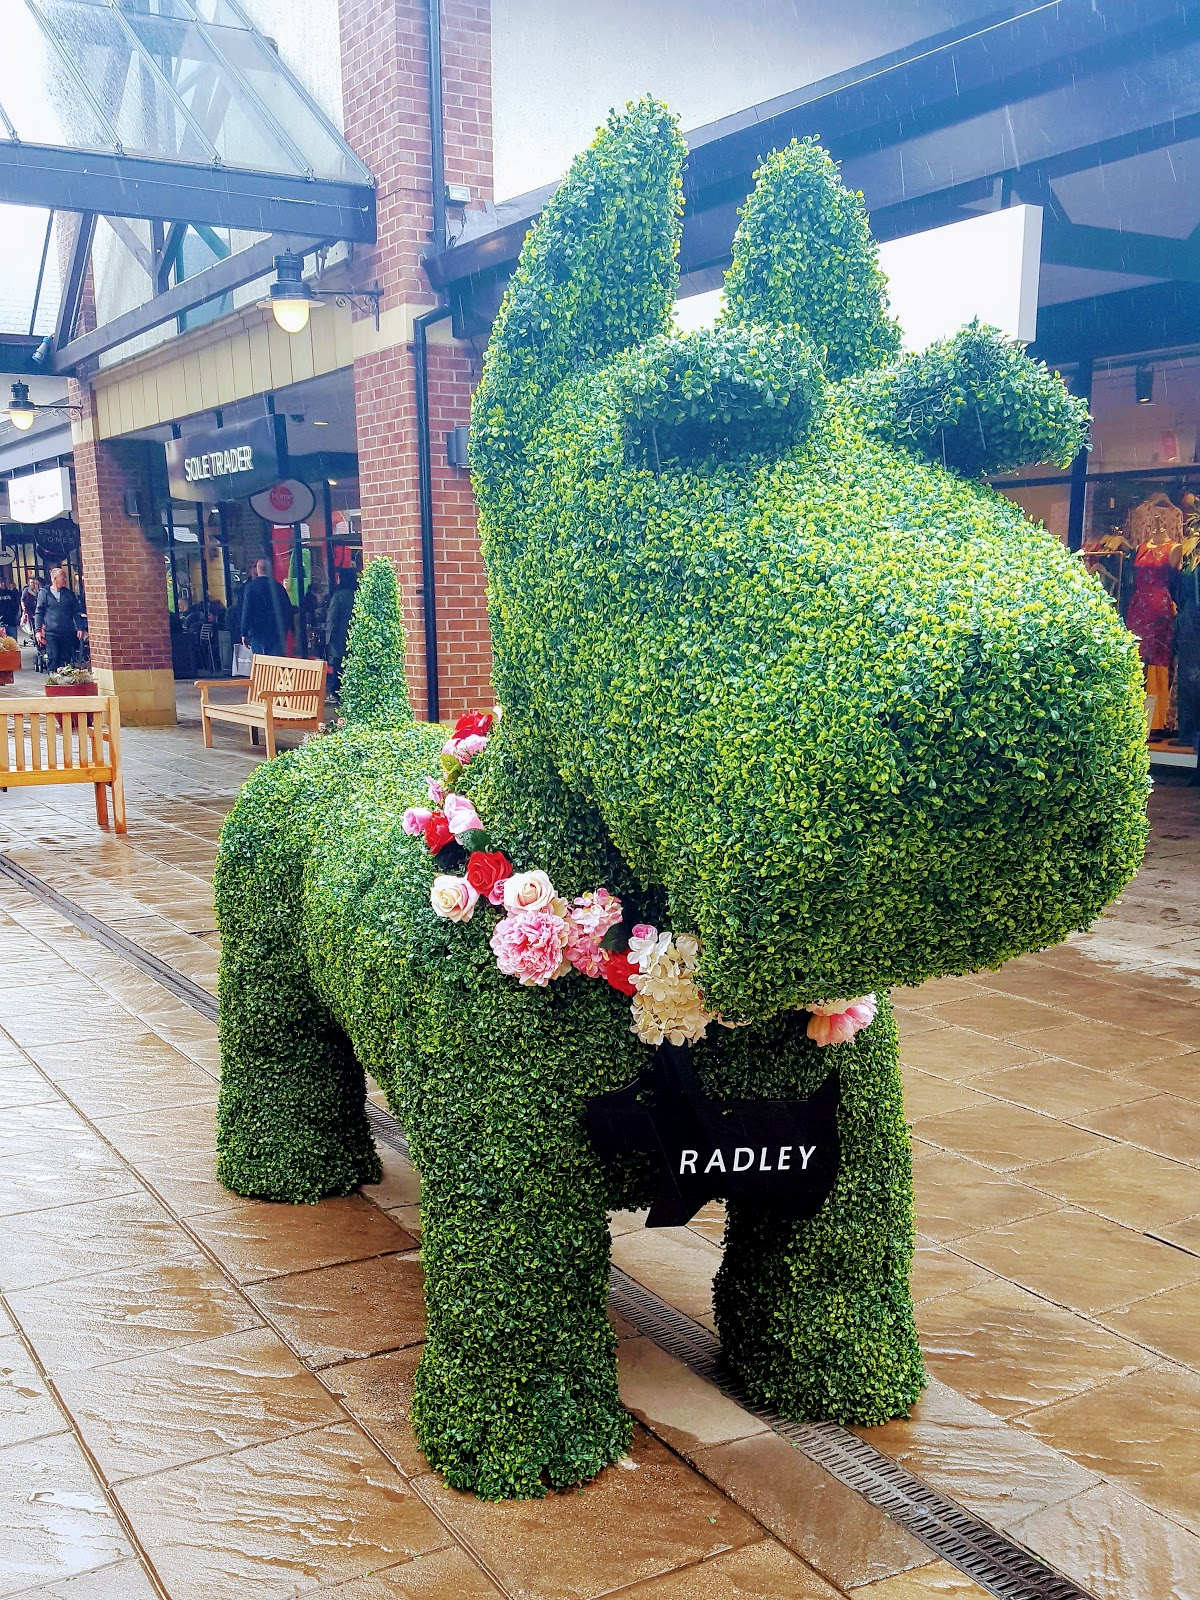 Big Radley Dog: Welcome To The Weekend Blog Hop…